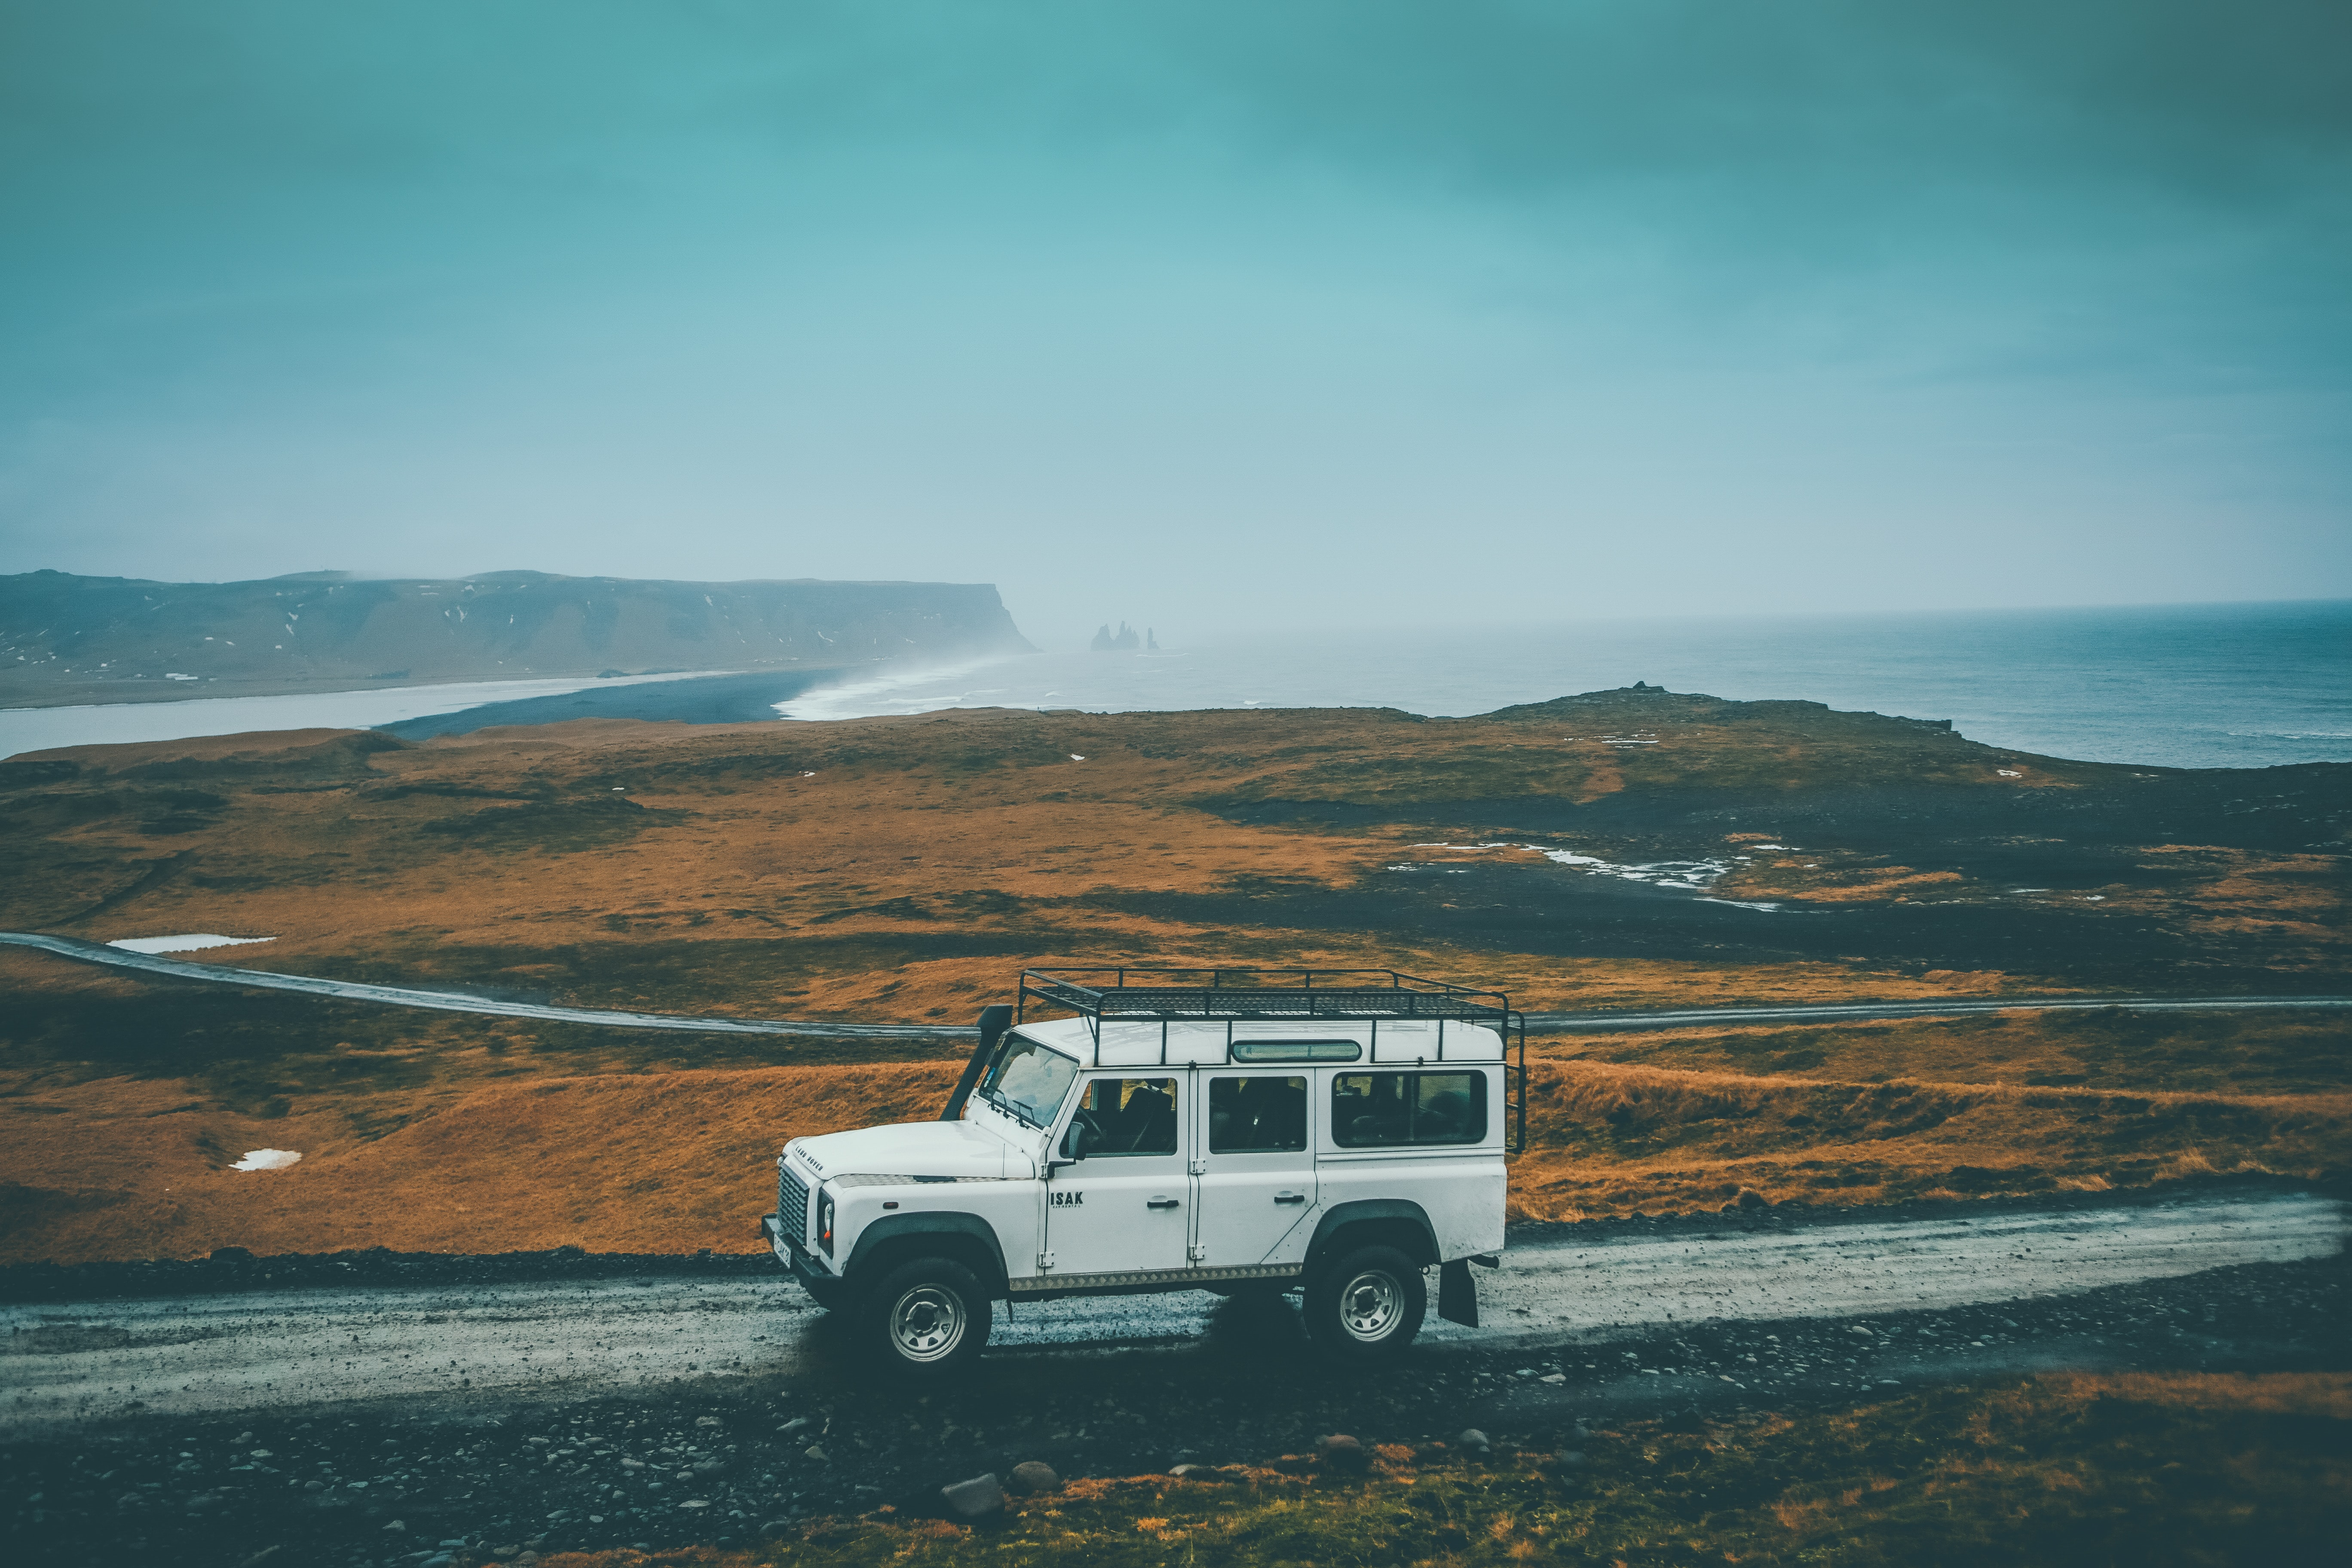 A white off-road vehicle on a dirt road with a misty shoreline at the back